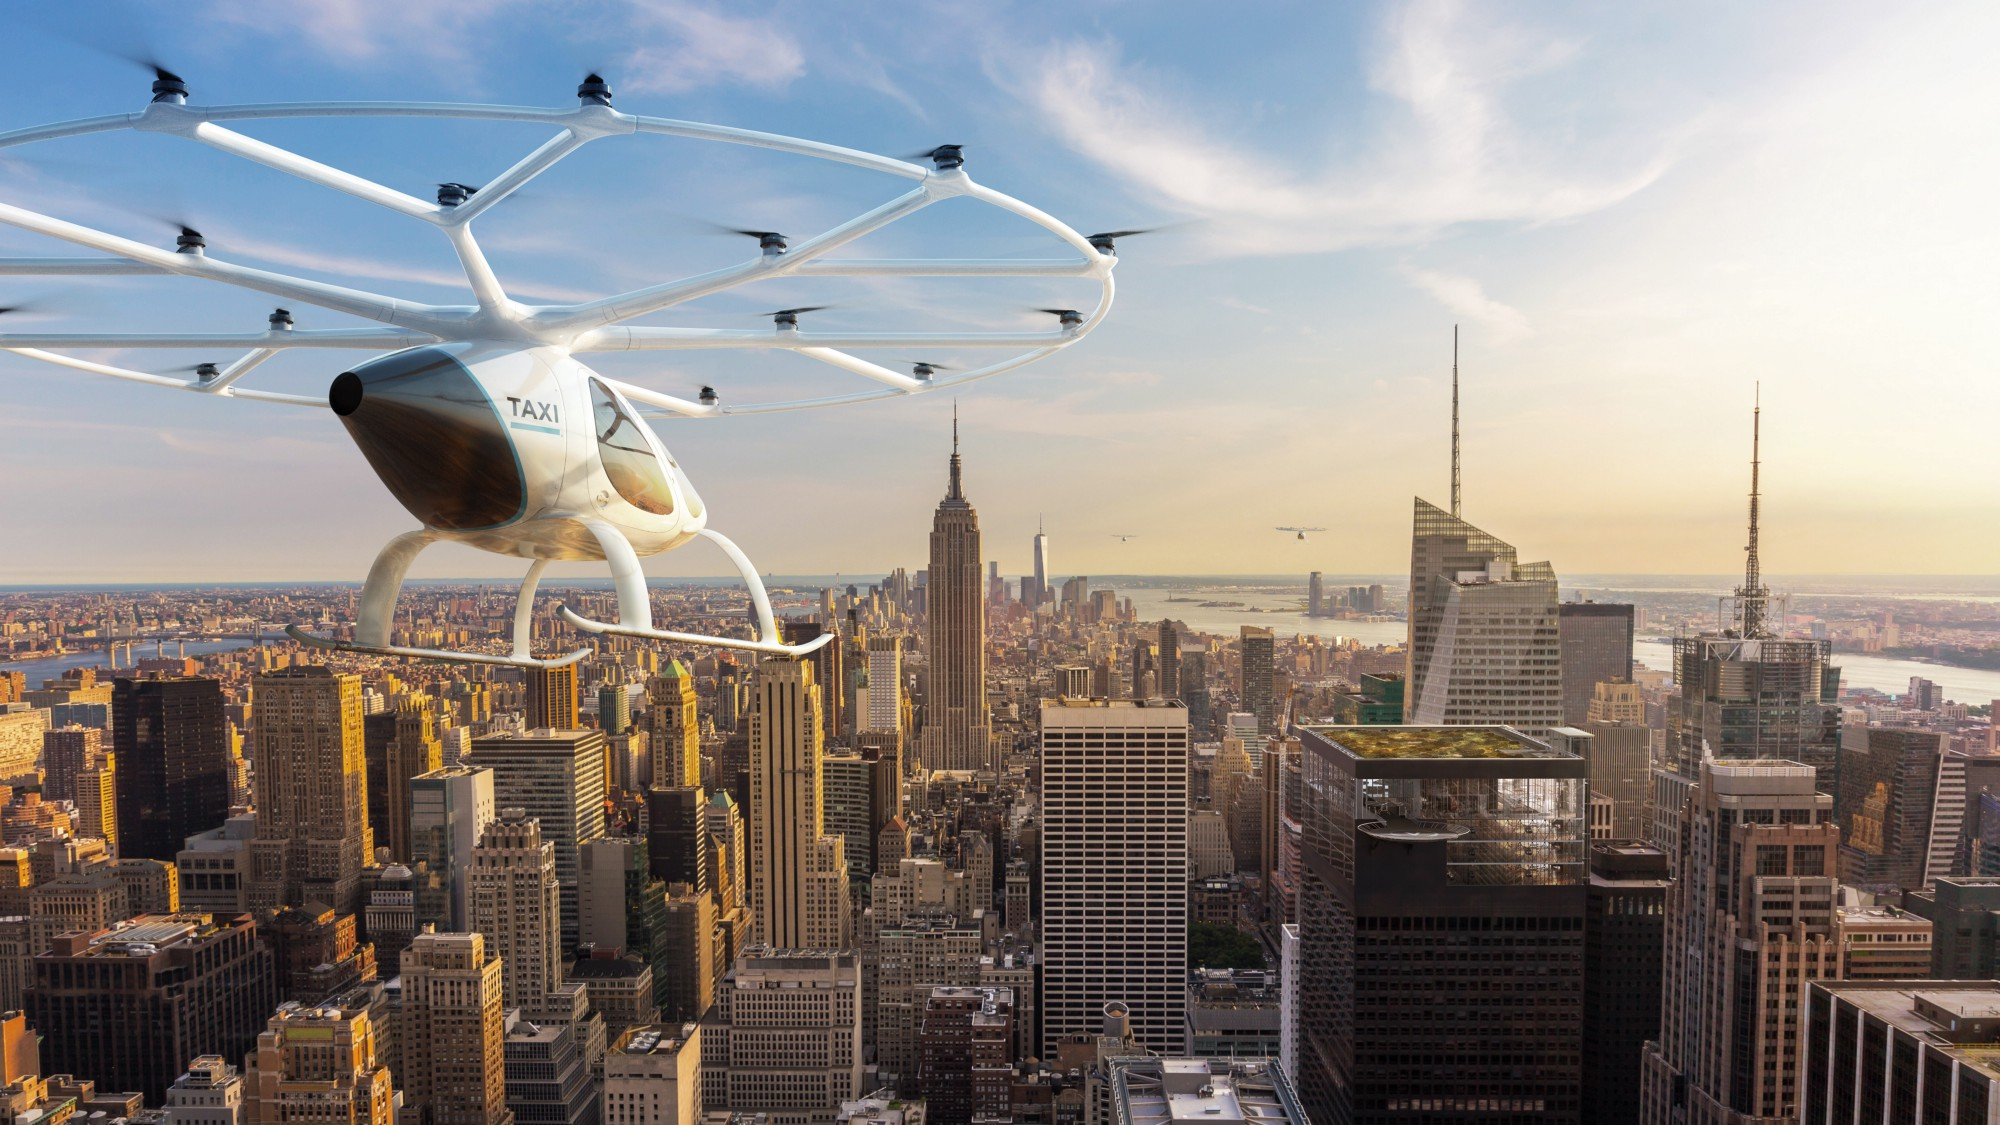 Volocopter panorama over New York City.